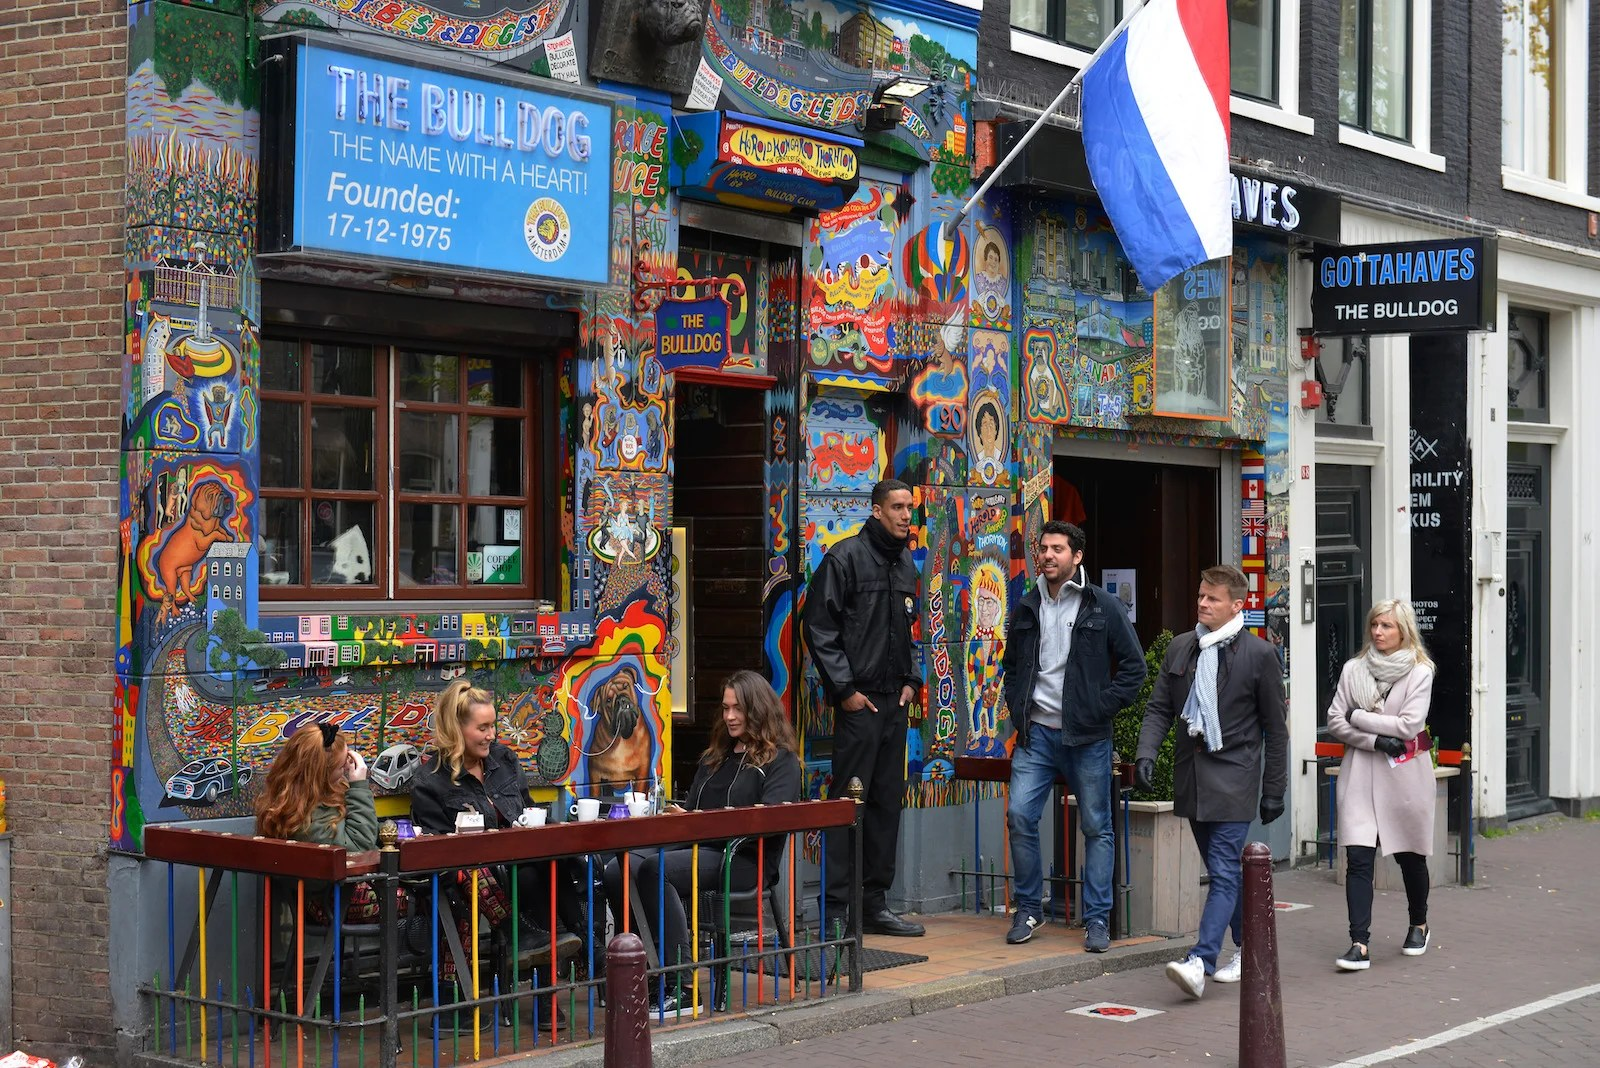 Amsterdam considering banning tourists from coffee shops